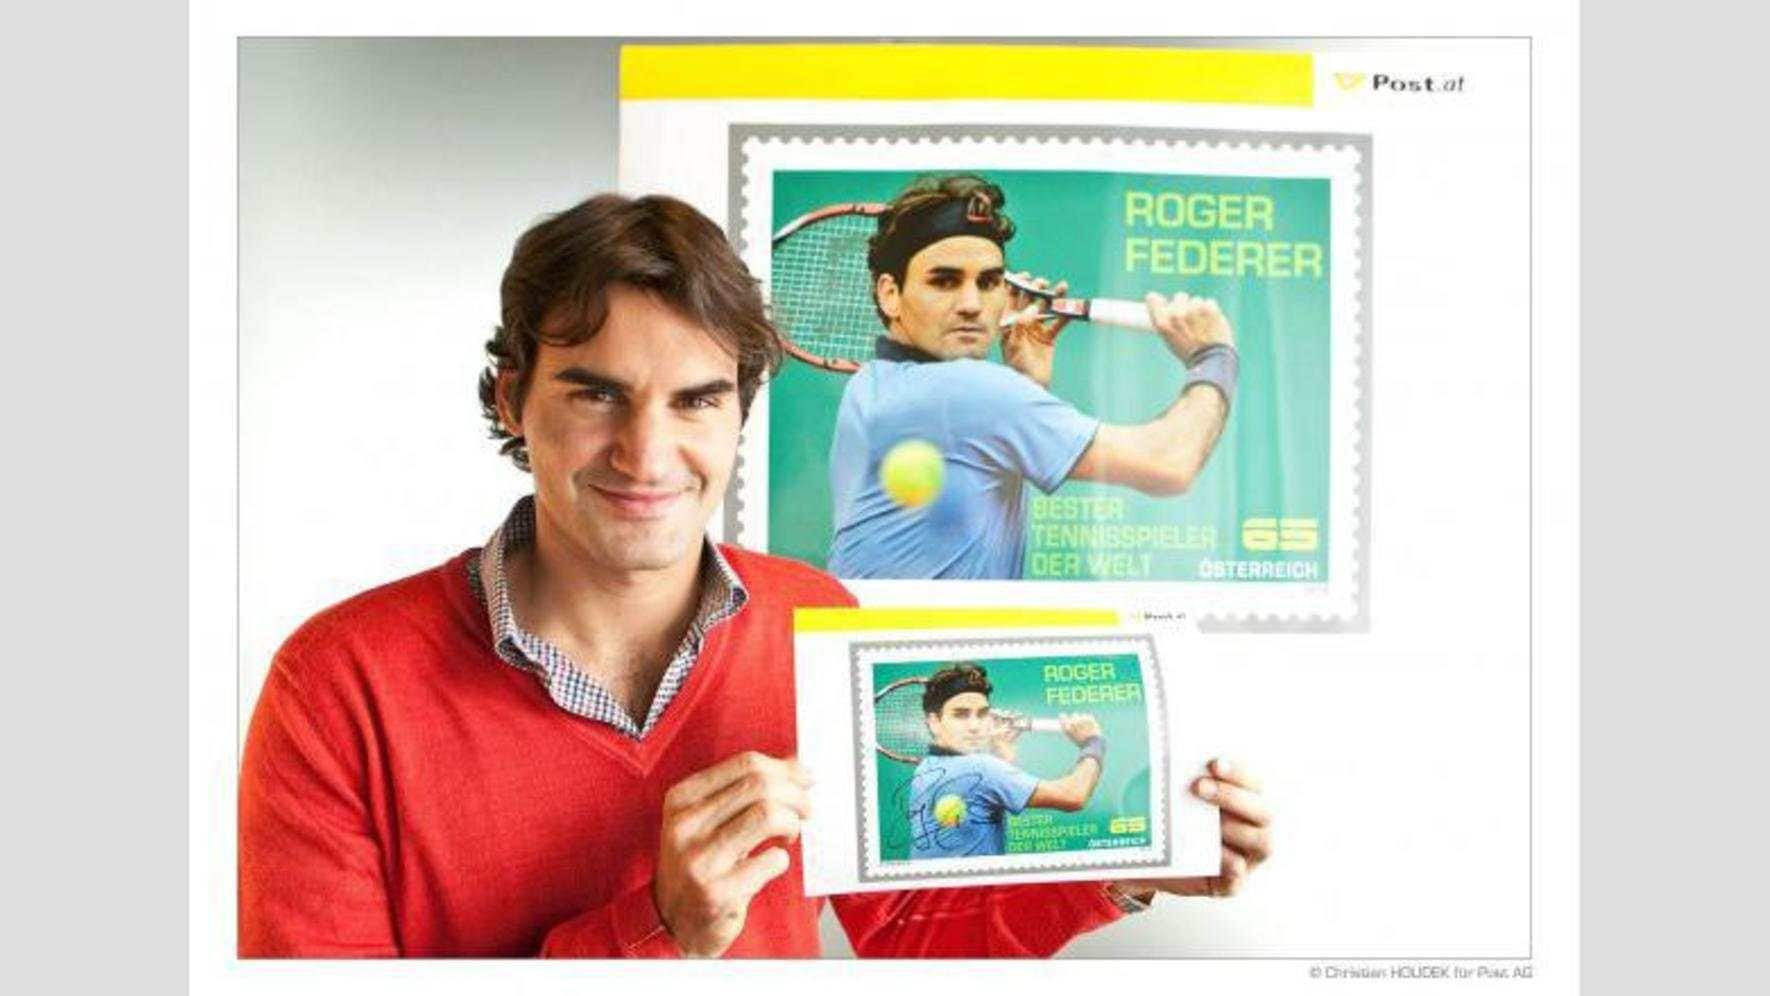 Roger Federer kommentiert das Foto auf Facebook: «I am on my way to visit one of the projects that I support in Ethiopia. But before I left home yesterday, the Austrian Postal Service presented me with a stamp. It was a nice honor.»